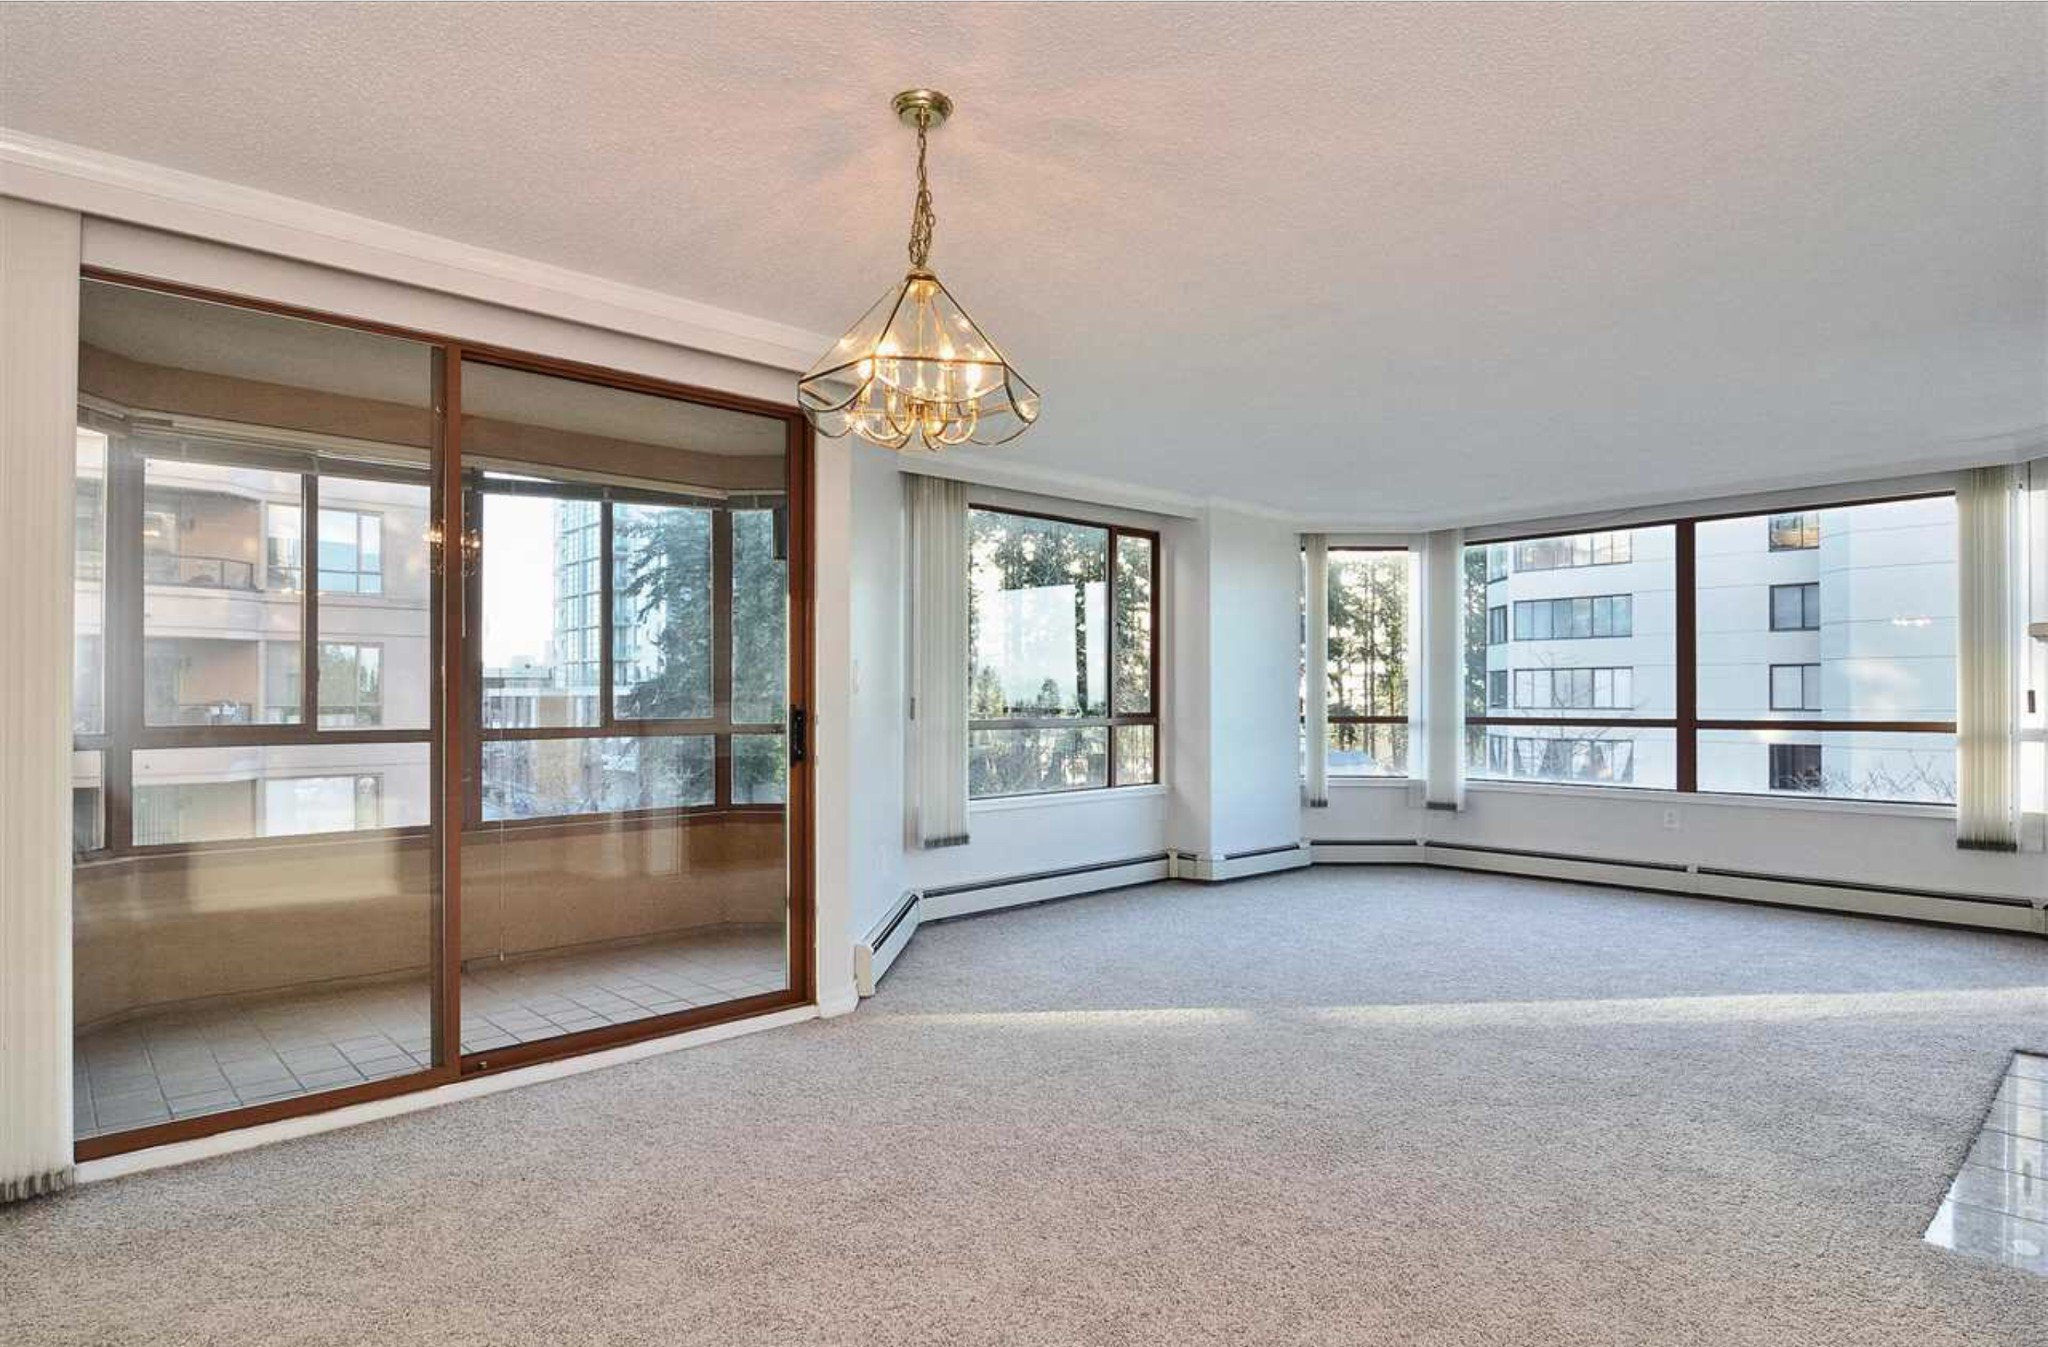 Photo 5: Photos: 405, 15111 Russell Avenue: White Rock Condo for sale (South Surrey White Rock)  : MLS®# R2133728